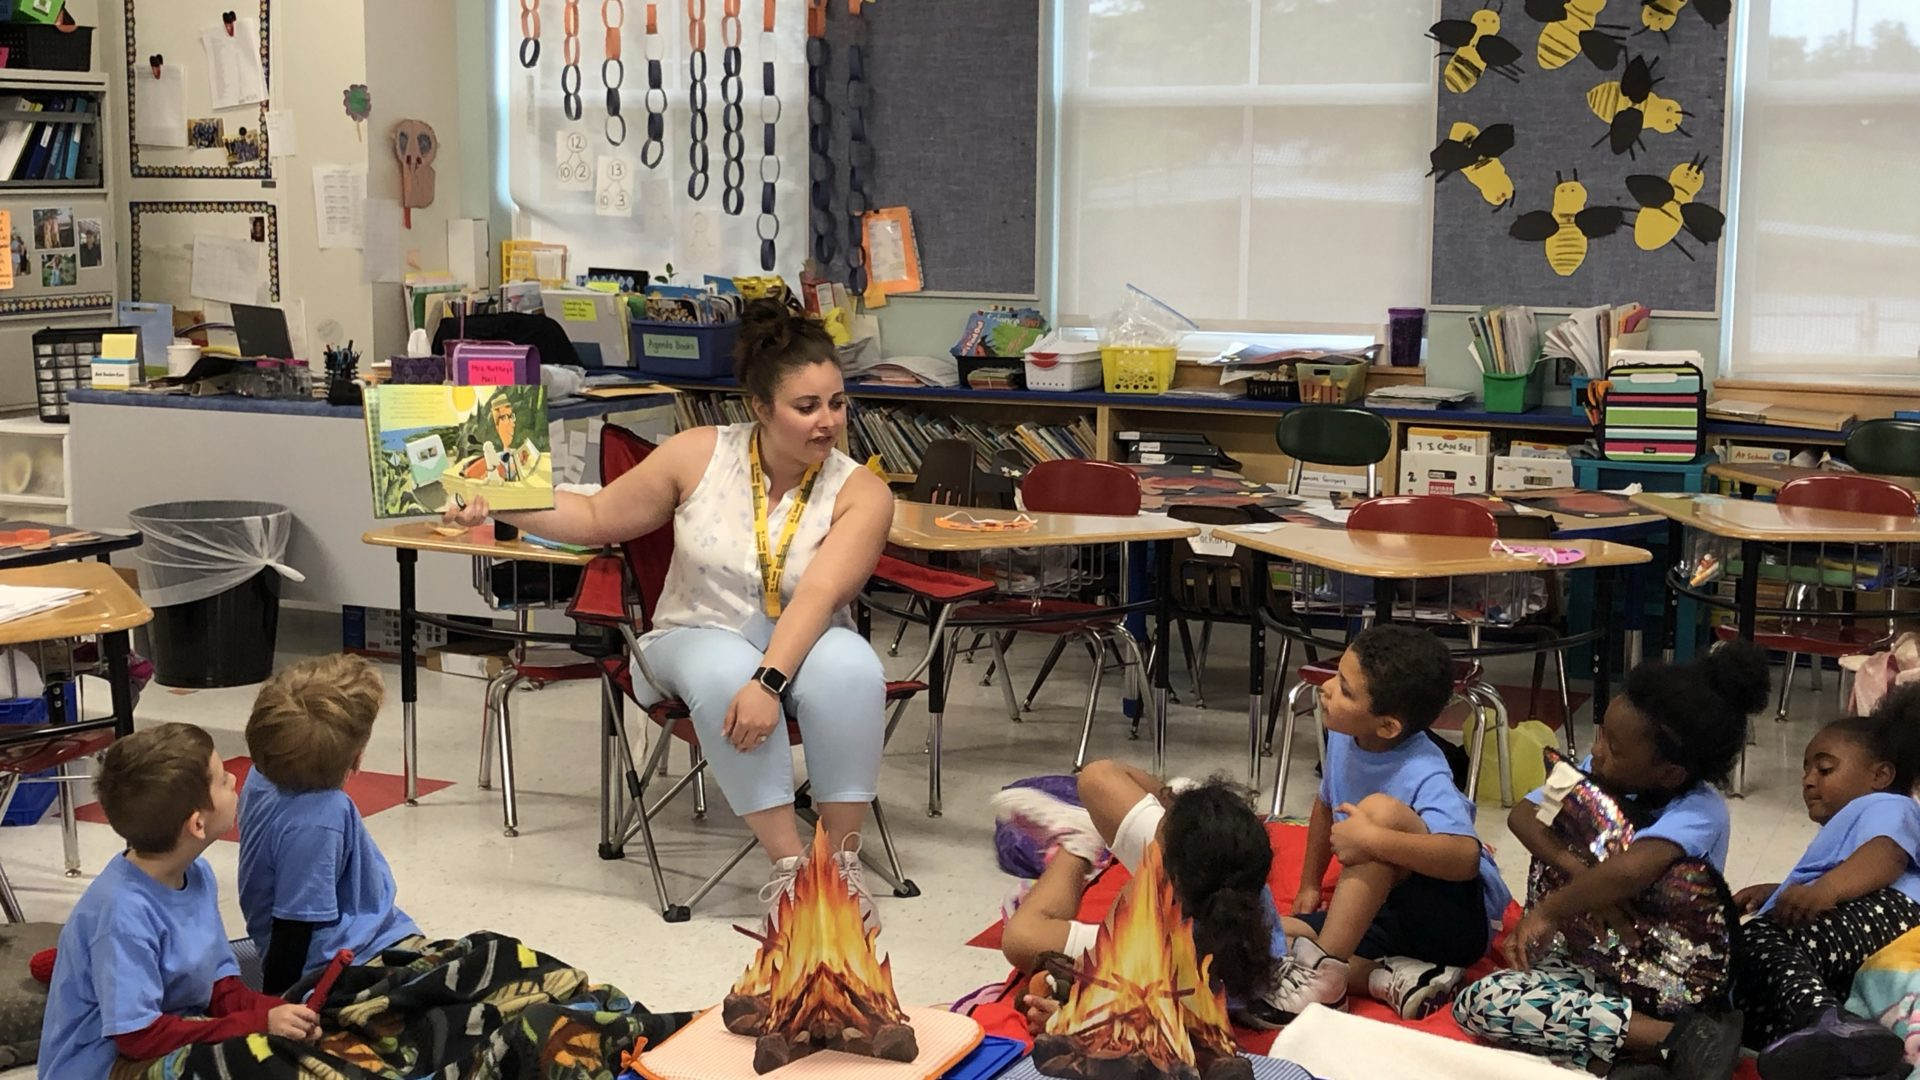 a guest reader reading to children in a camp-themed classroom